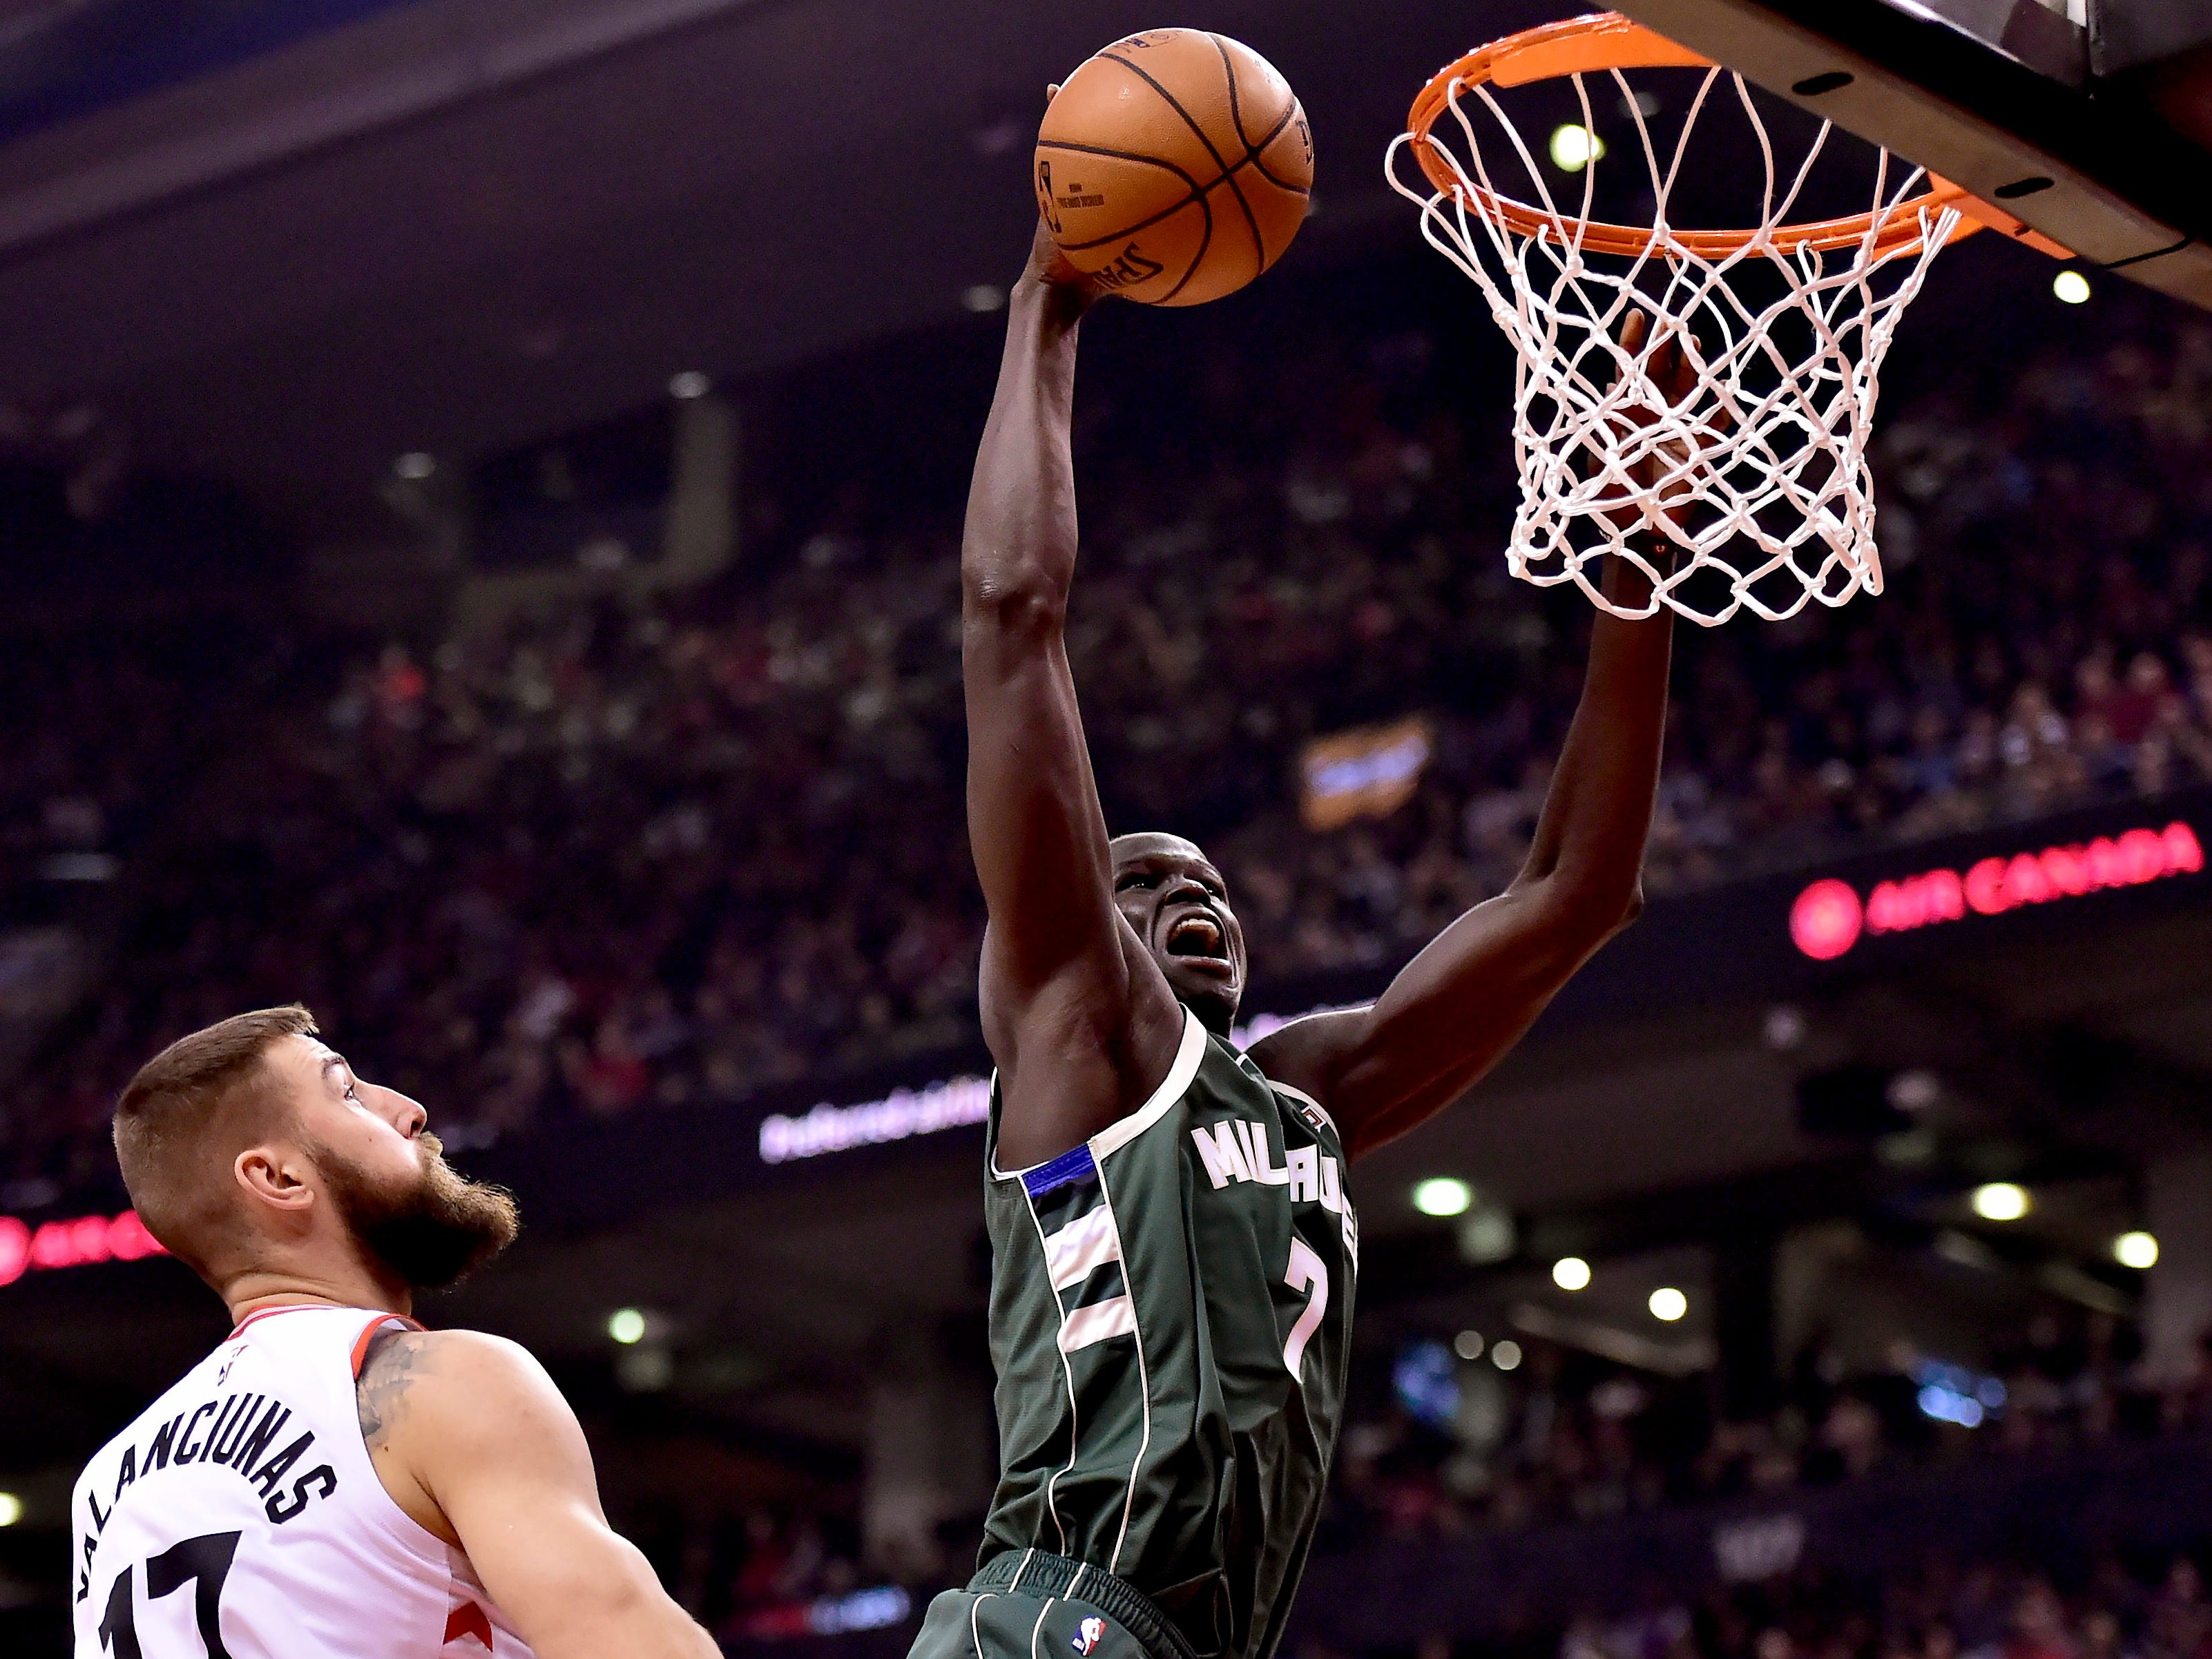 Toronto Raptors center Jonas Valanciunas (17) watches as Milwaukee Bucks forward Thon Maker (7) dunks during first-half NBA basketball game action in Toronto, Sunday, Dec. 9, 2018. (Frank Gunn/The Canadian Press via AP)